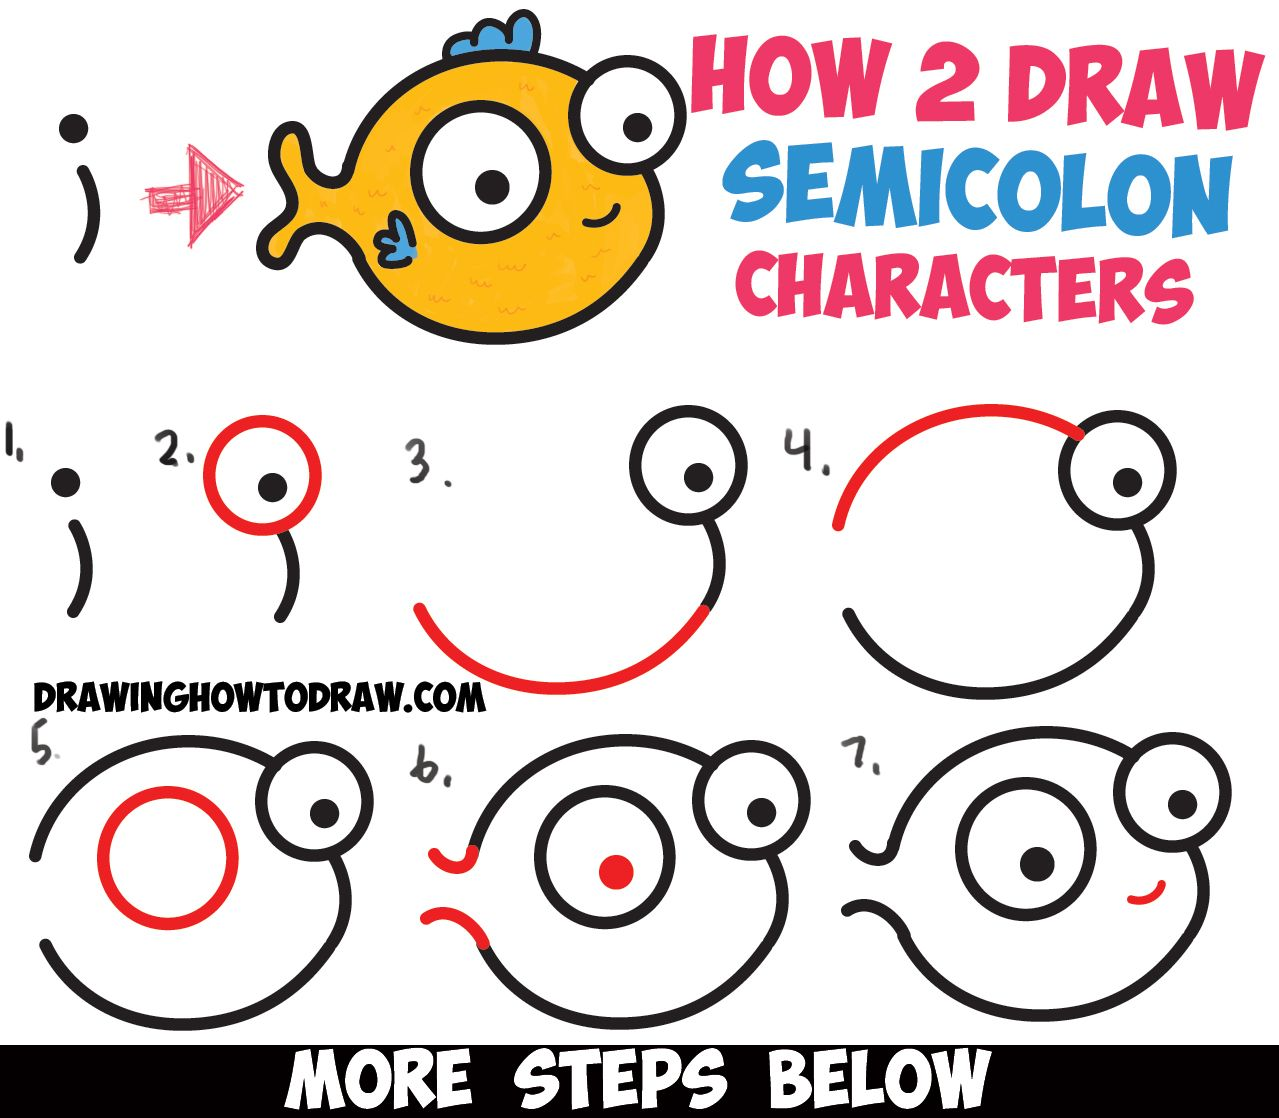 How to draw a cute easy cartoon fish from a semicolon simple step by step drawing tutorial for kids